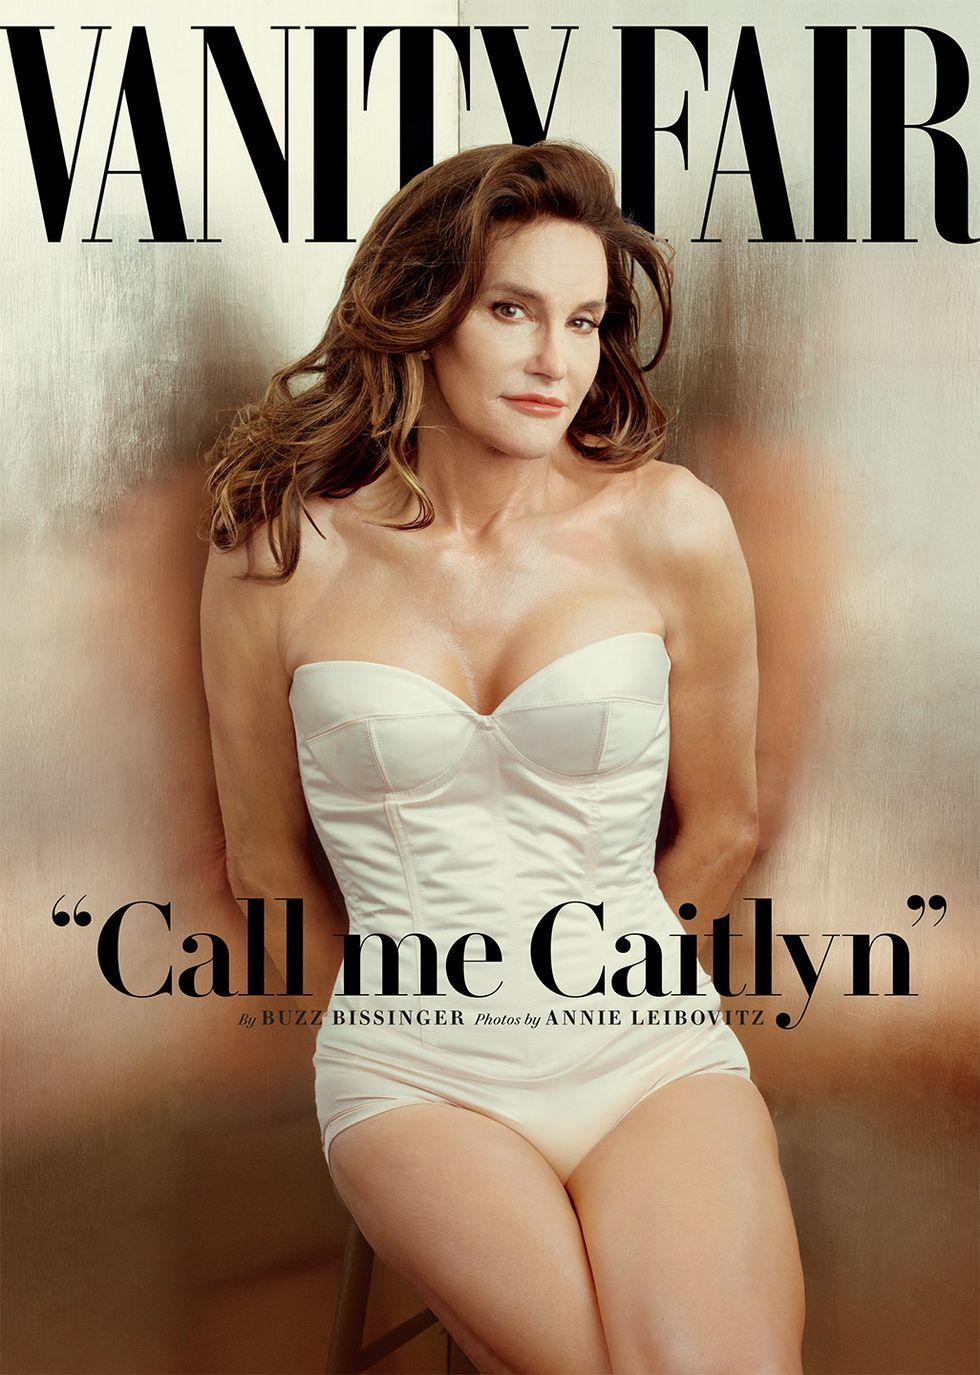 Introducing Caitlyn Jenner on the Cover of Vanity Fair